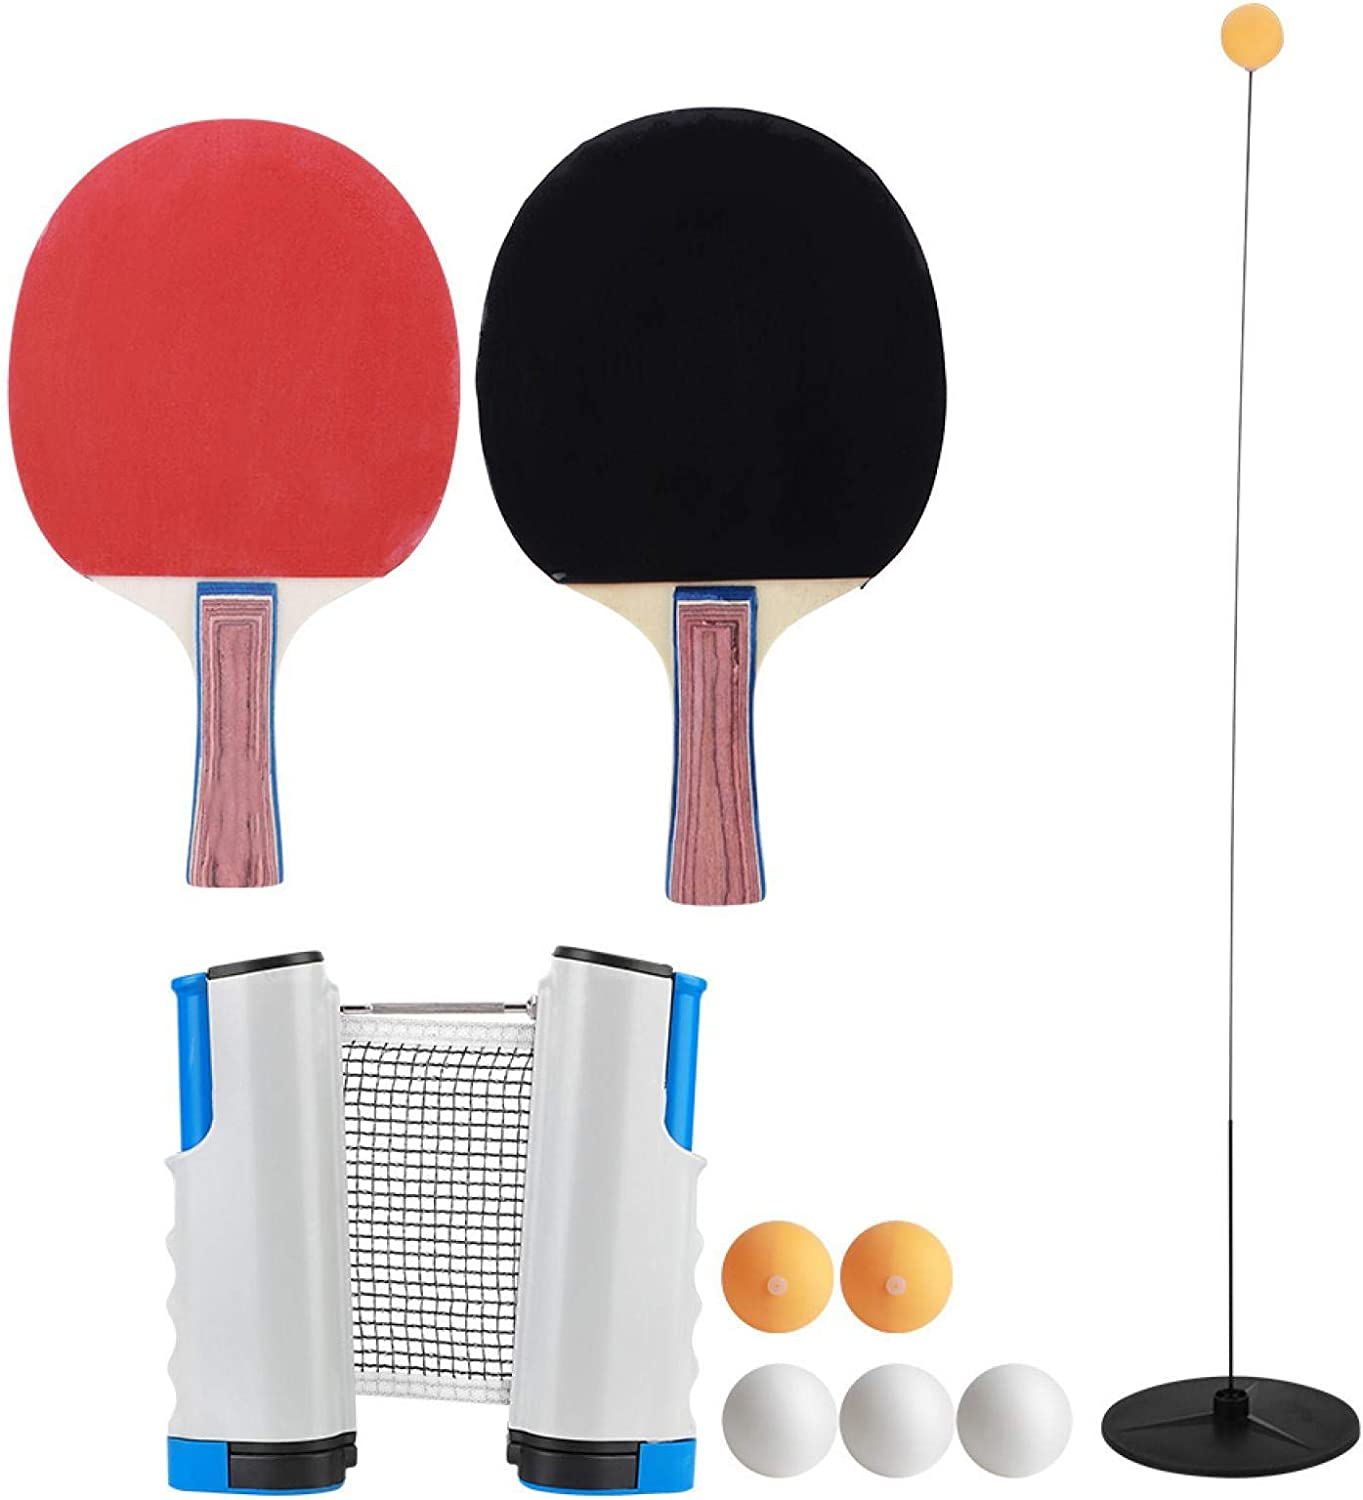 Cerlingwee Portable Table Tennis Bombing free shipping Ranking TOP16 Set ABS Seamless Retra Made of